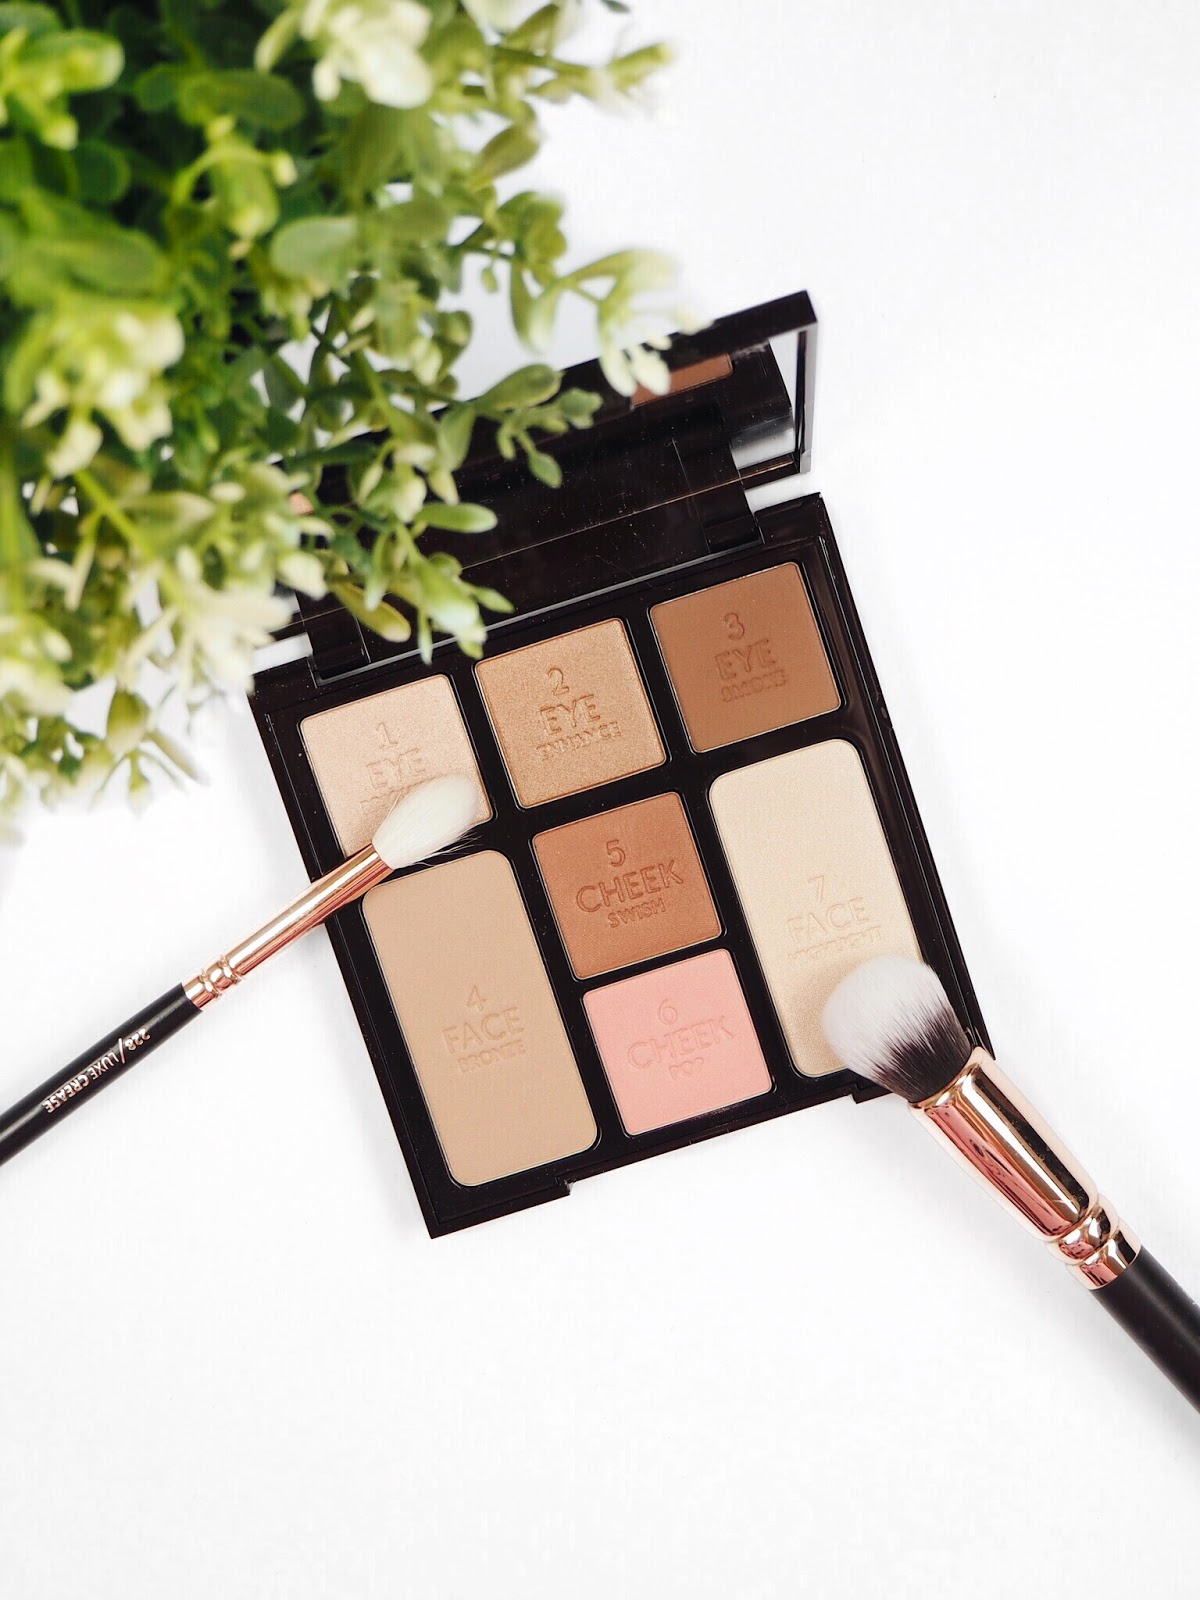 Charlotte Tilbury Beauty Glow Look In An Instant Palette with rose gold and bronze eyeshadows, with rose gold Zoeva makeup brushes, an IKEA plant (you can see green leaves) on a white background as a flatlay for a UK beauty blog review